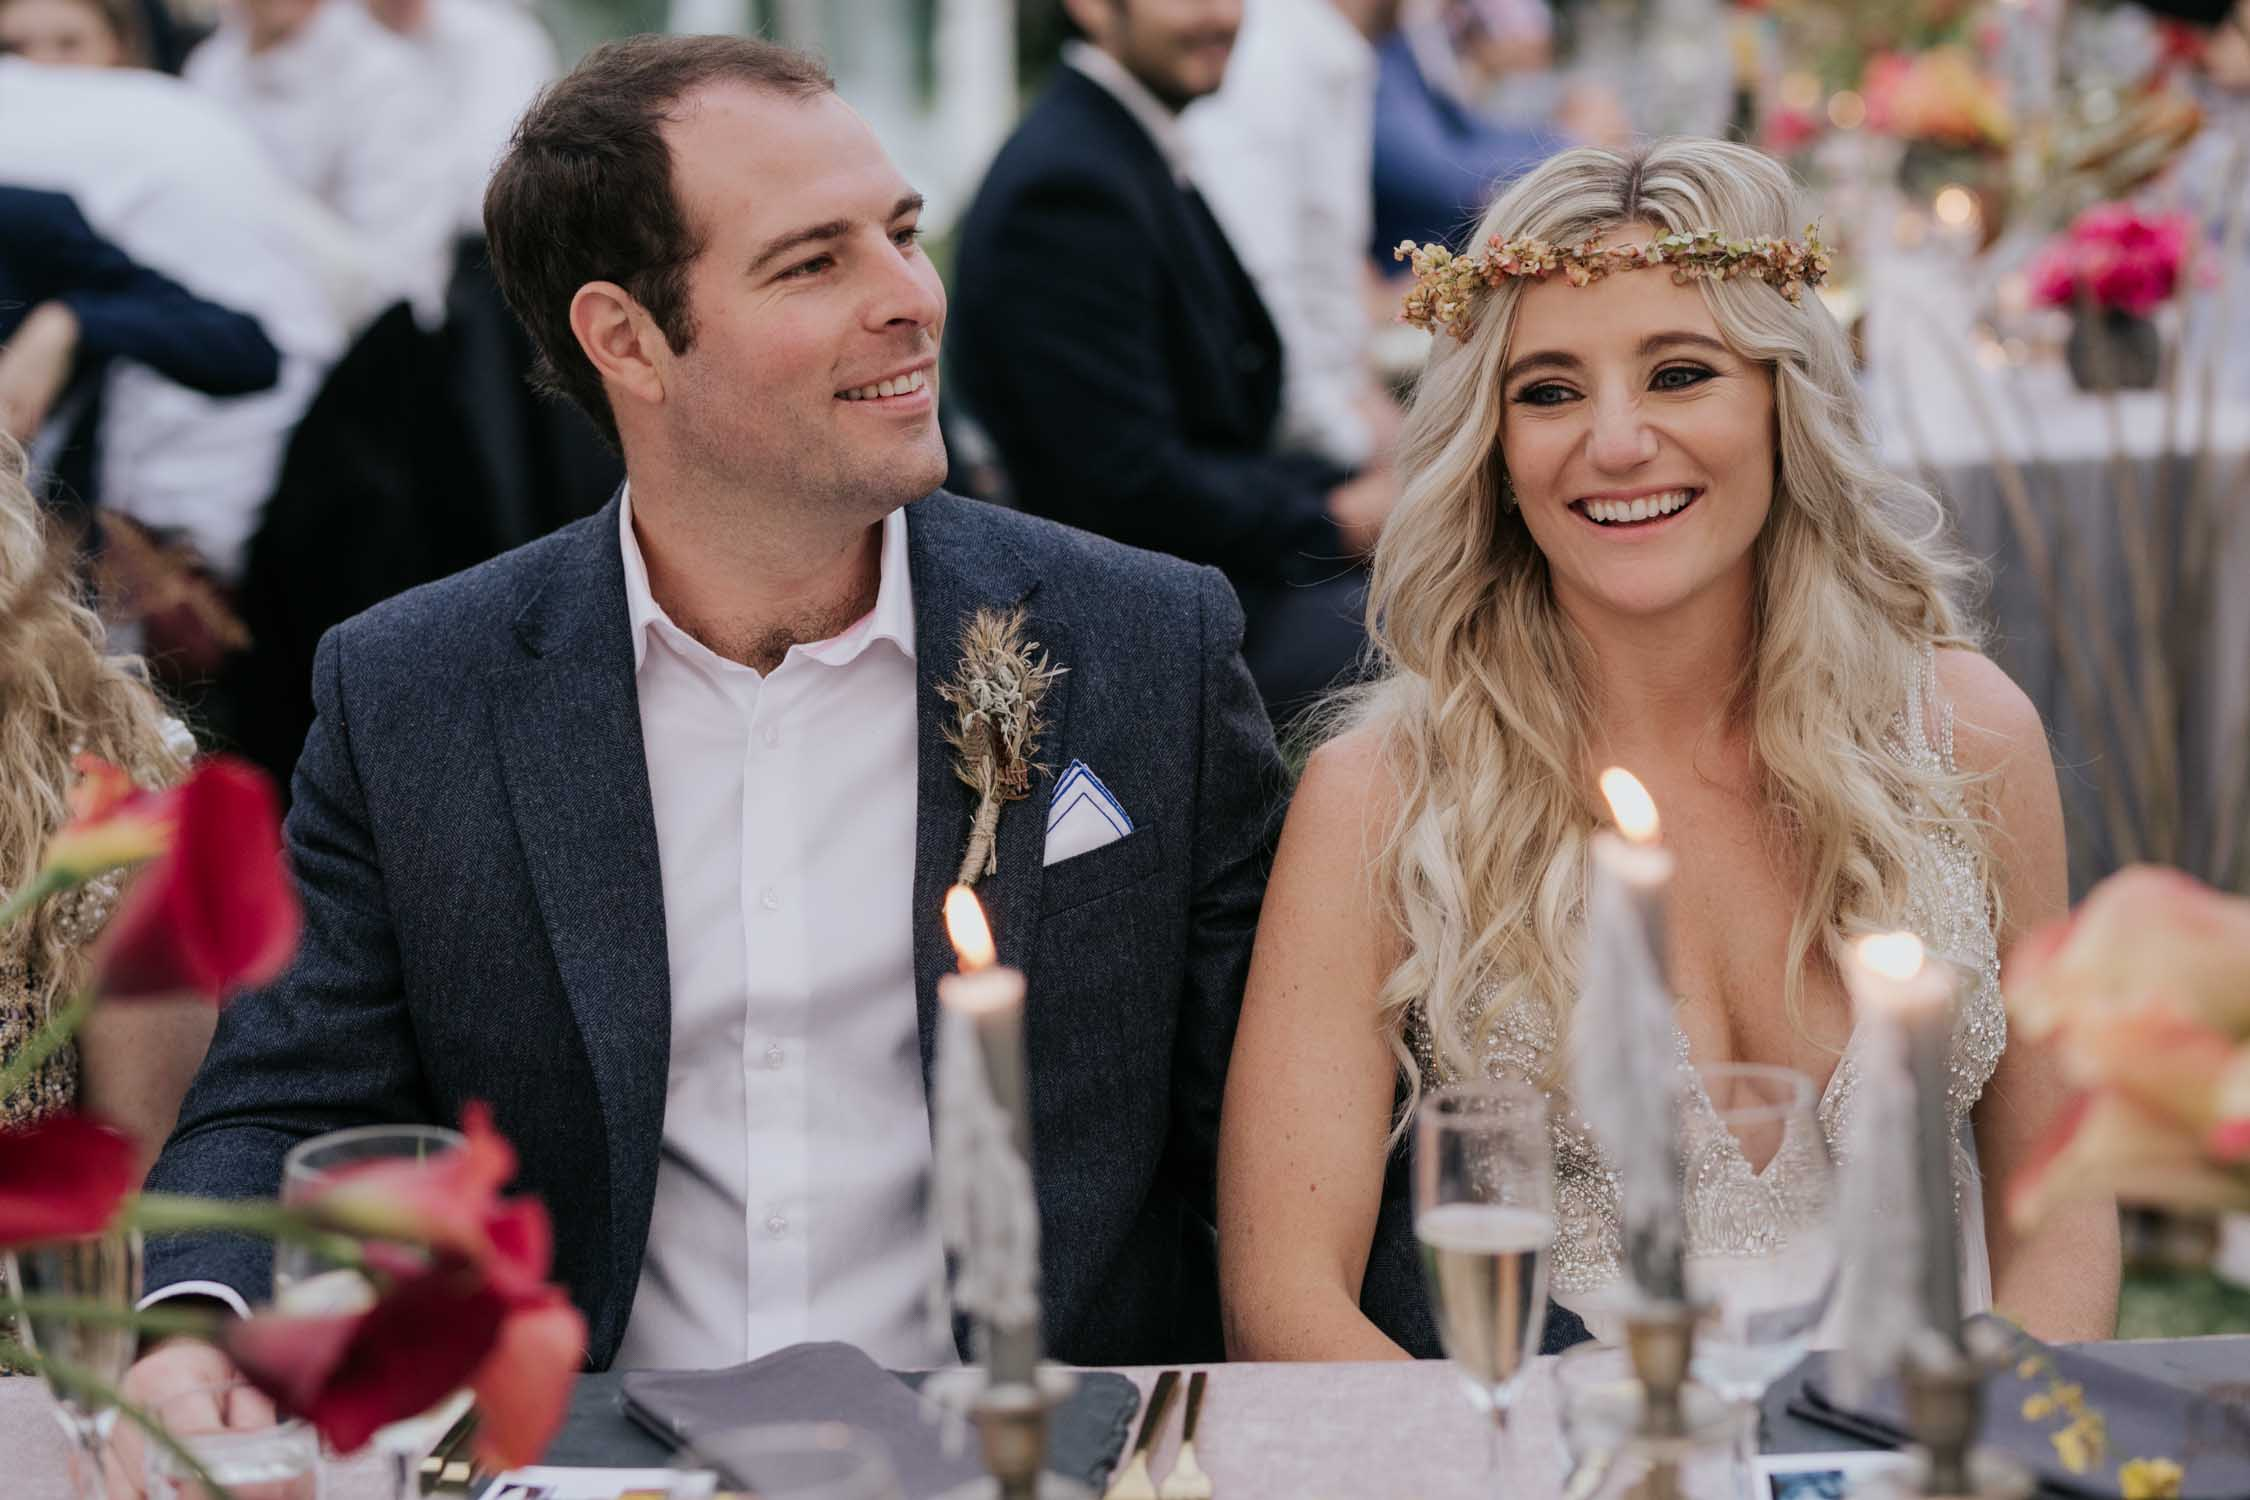 Candid and emotional photographs of guests and the bride and groom enjoying themselves and laughing during a wedding reception and during speeches.